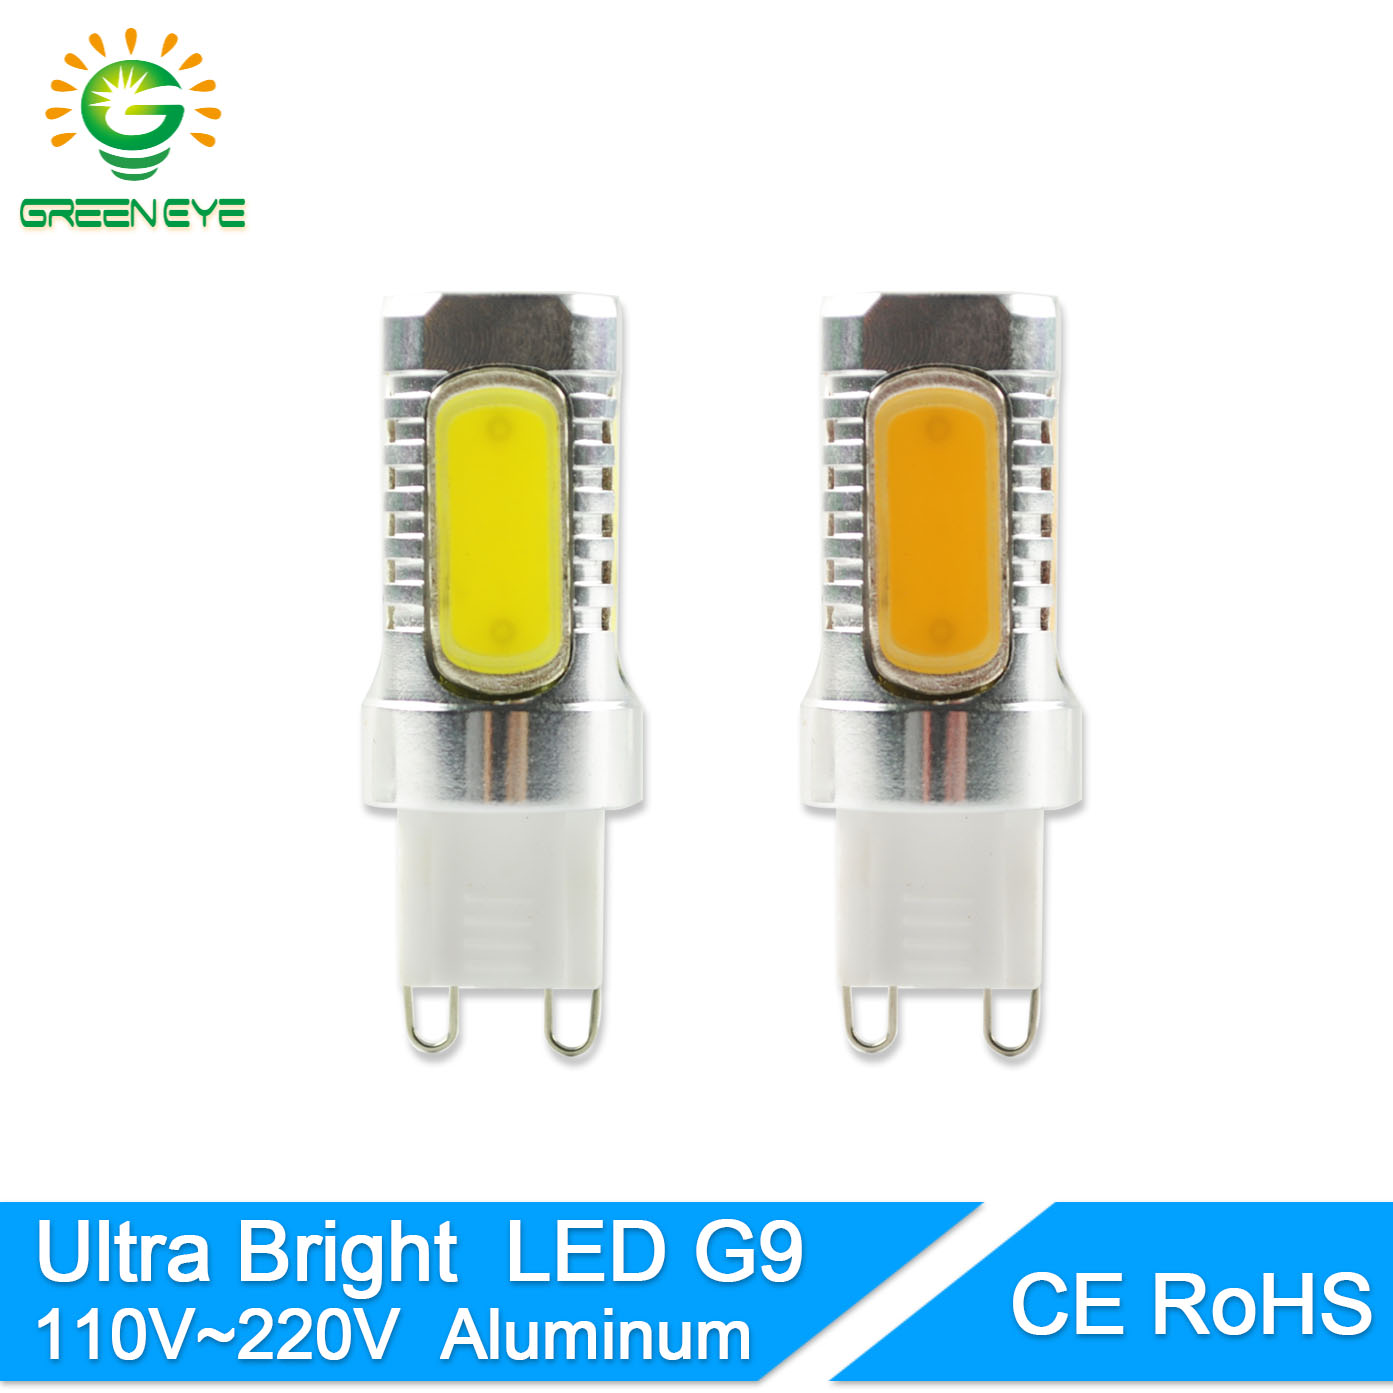 GreenEye Ultra Bright LED Bulb G9 12W 110V 220V COB Light Lamp Crystal Chandelier Spotlight Replace Halogen Ampoule Lampara LED greeneye led nightlight 3d bulb desk table wall lamp night light bulb for baby children toy party bar luminaria ampoule lampara